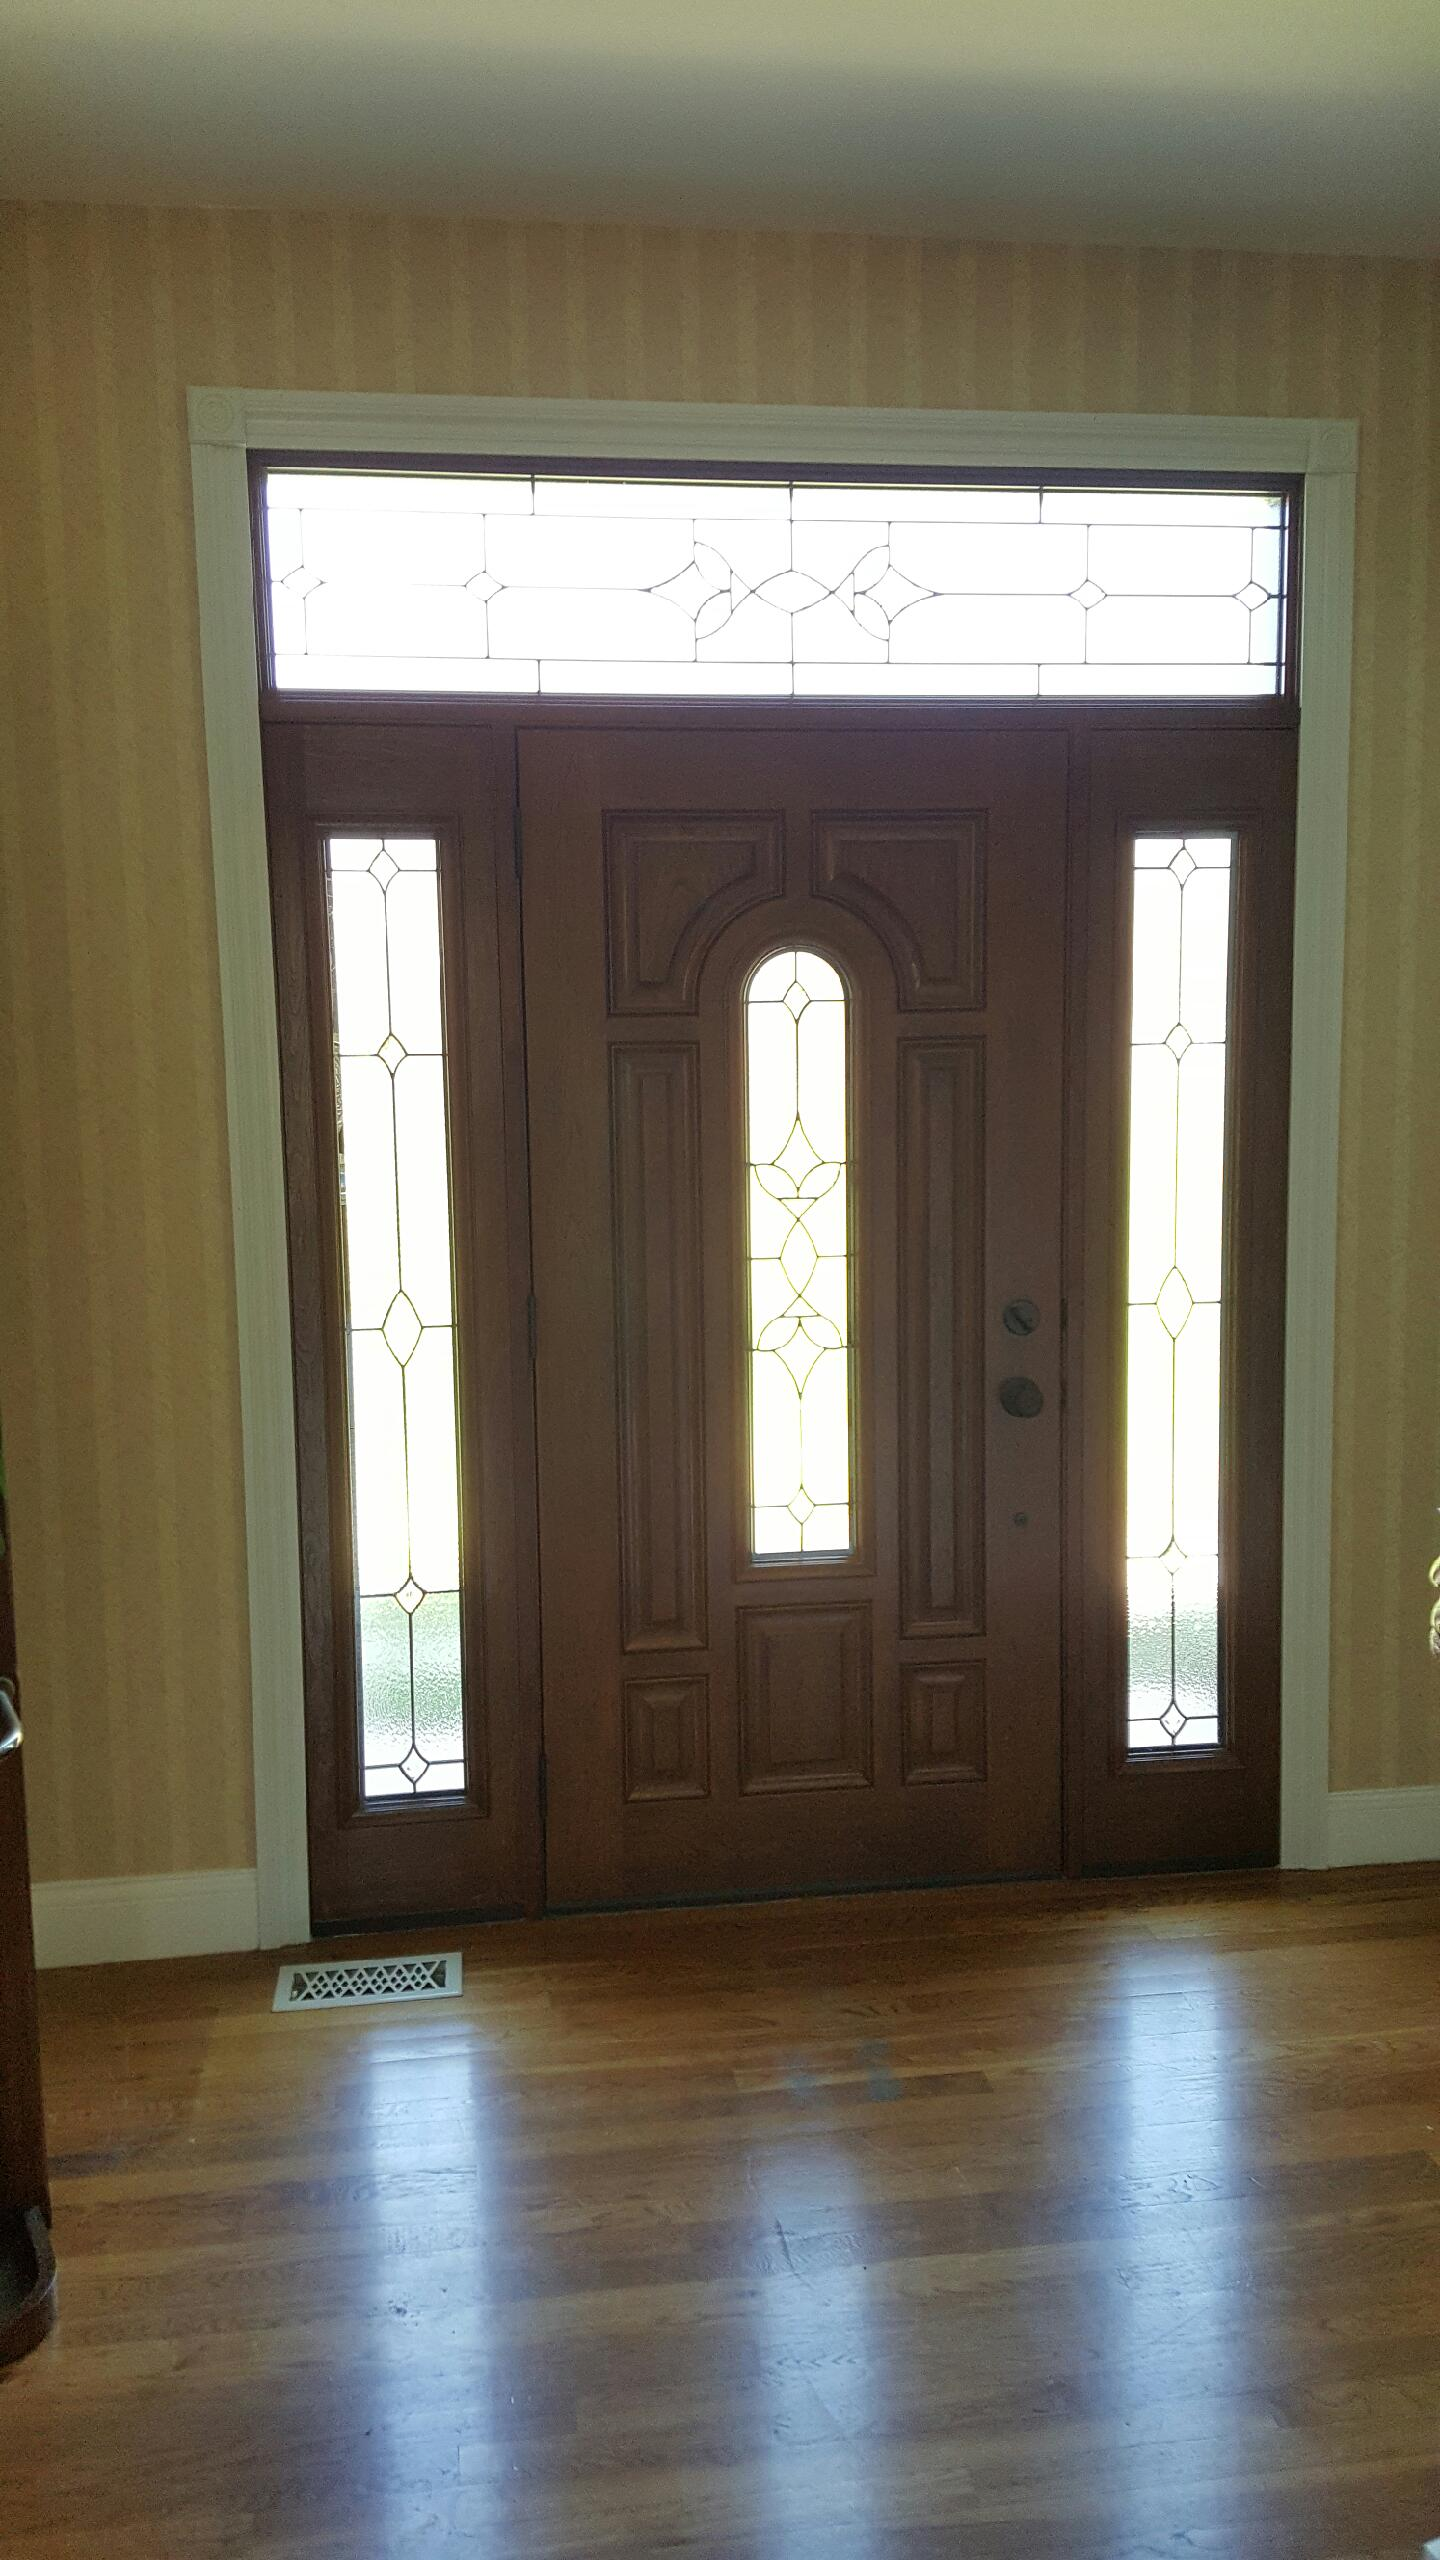 Positive Review For JFK Window And Door From Anderson Township For Andersen Windows And Provia Door In Hamiton May 20 2016 & Provia Doors Review u0026 Provia Entry Doors pezcame.com